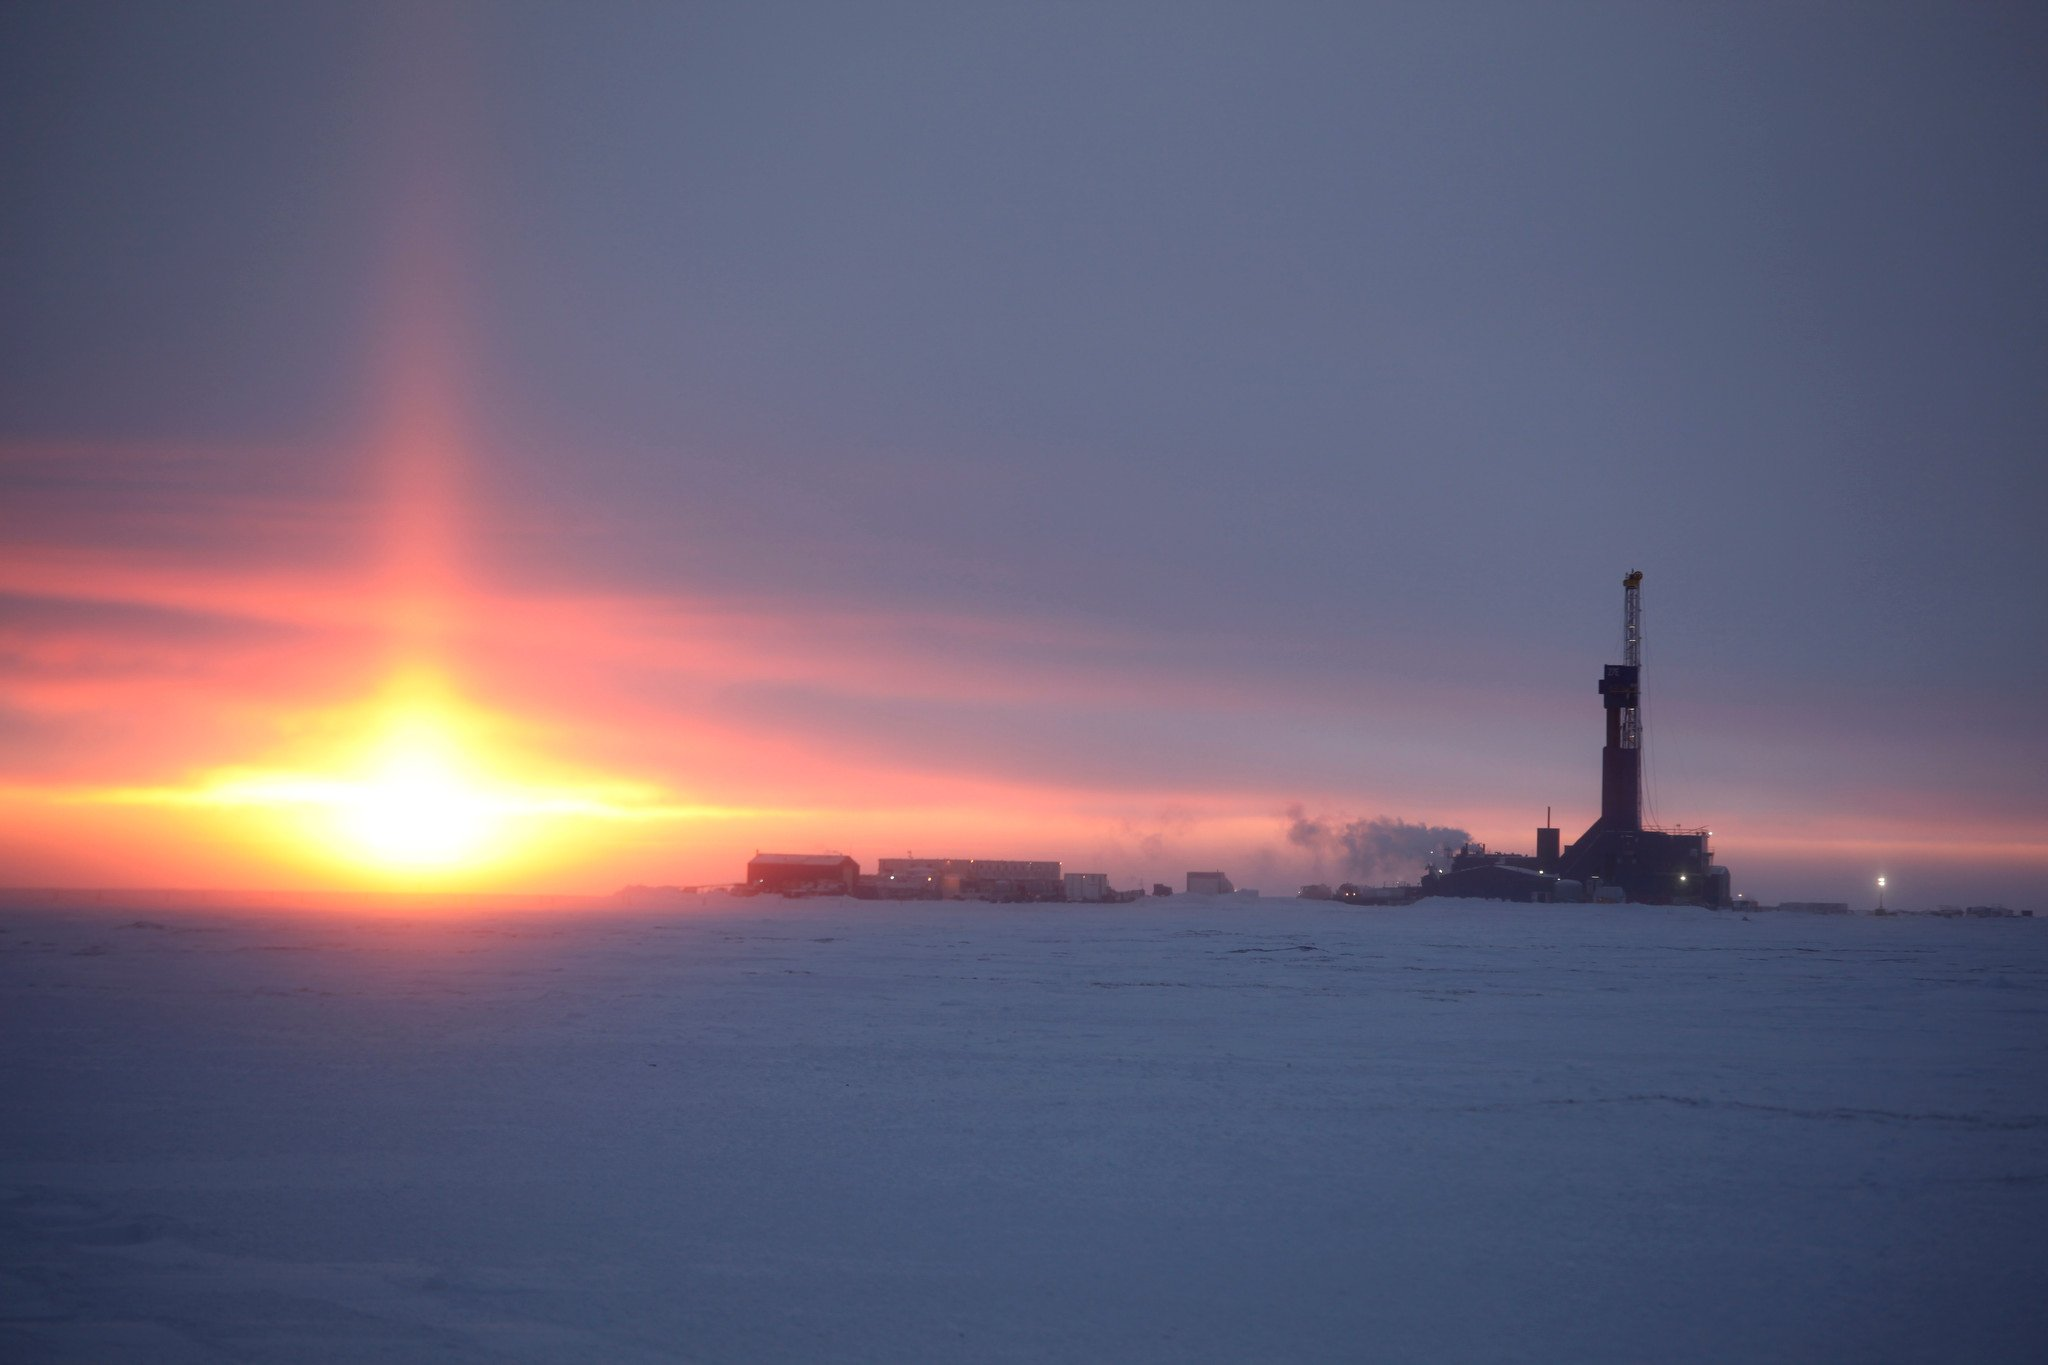 Alaska announces Arctic oil lease sales on the heels of 2 large North Slope discoveries